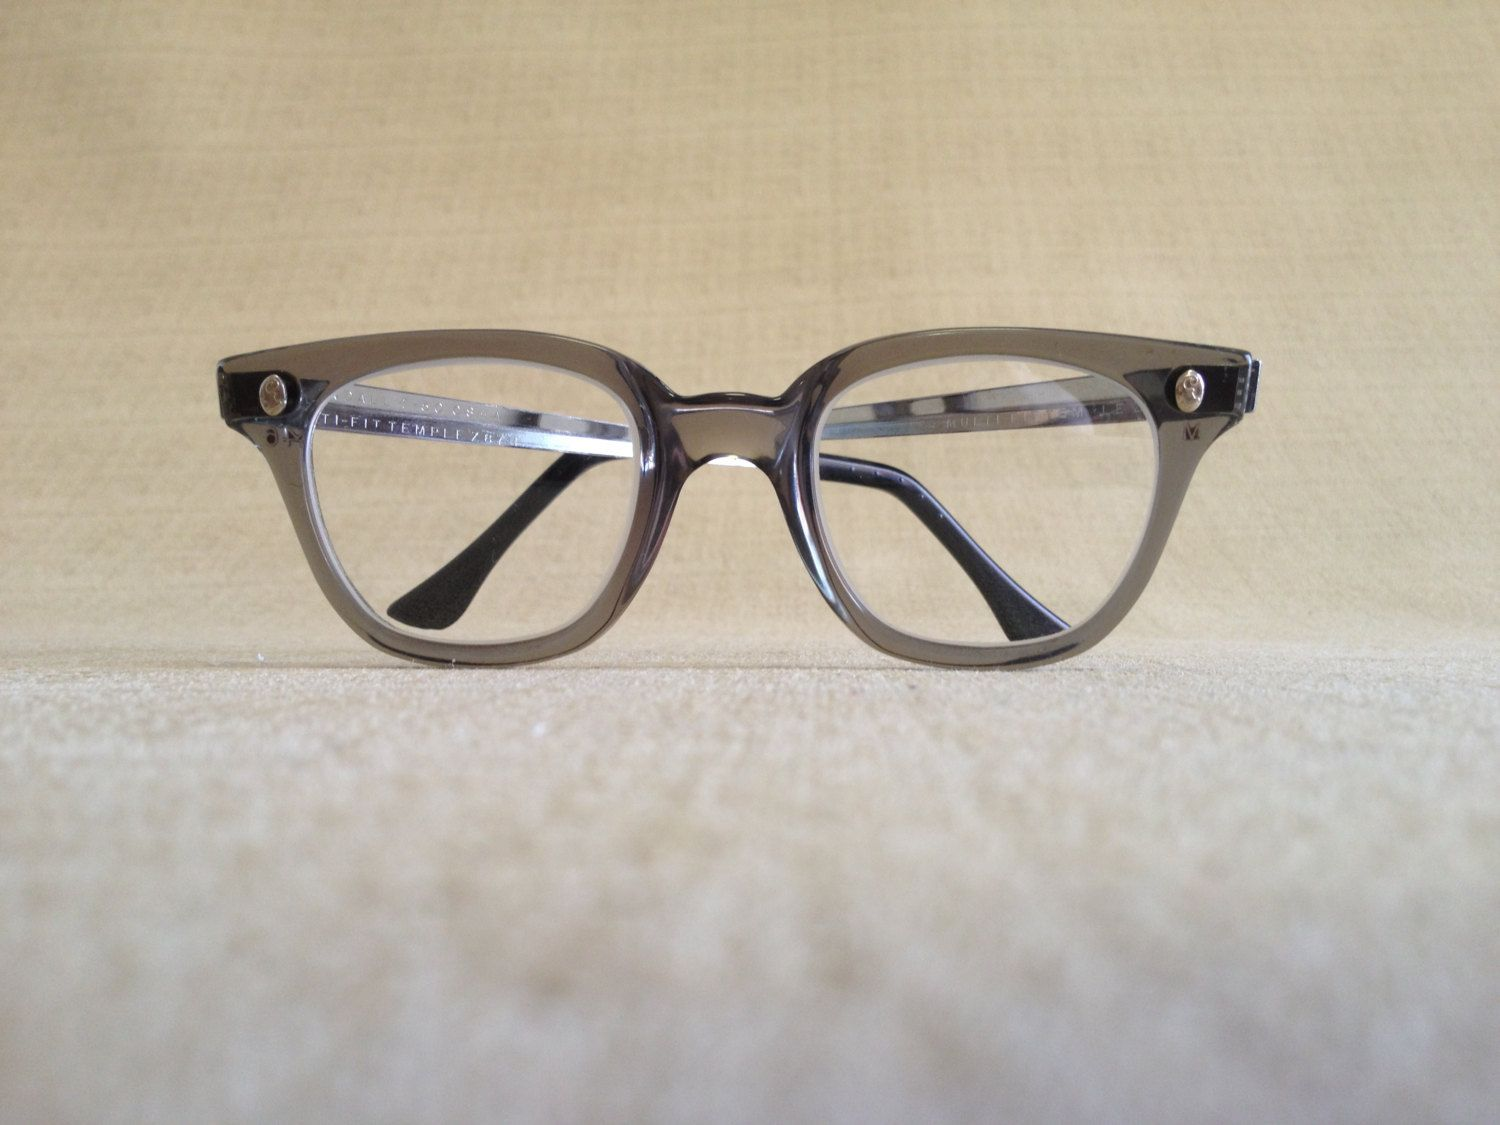 1950s60s Gray FendAll Safety Glasses, Metal Adjustable